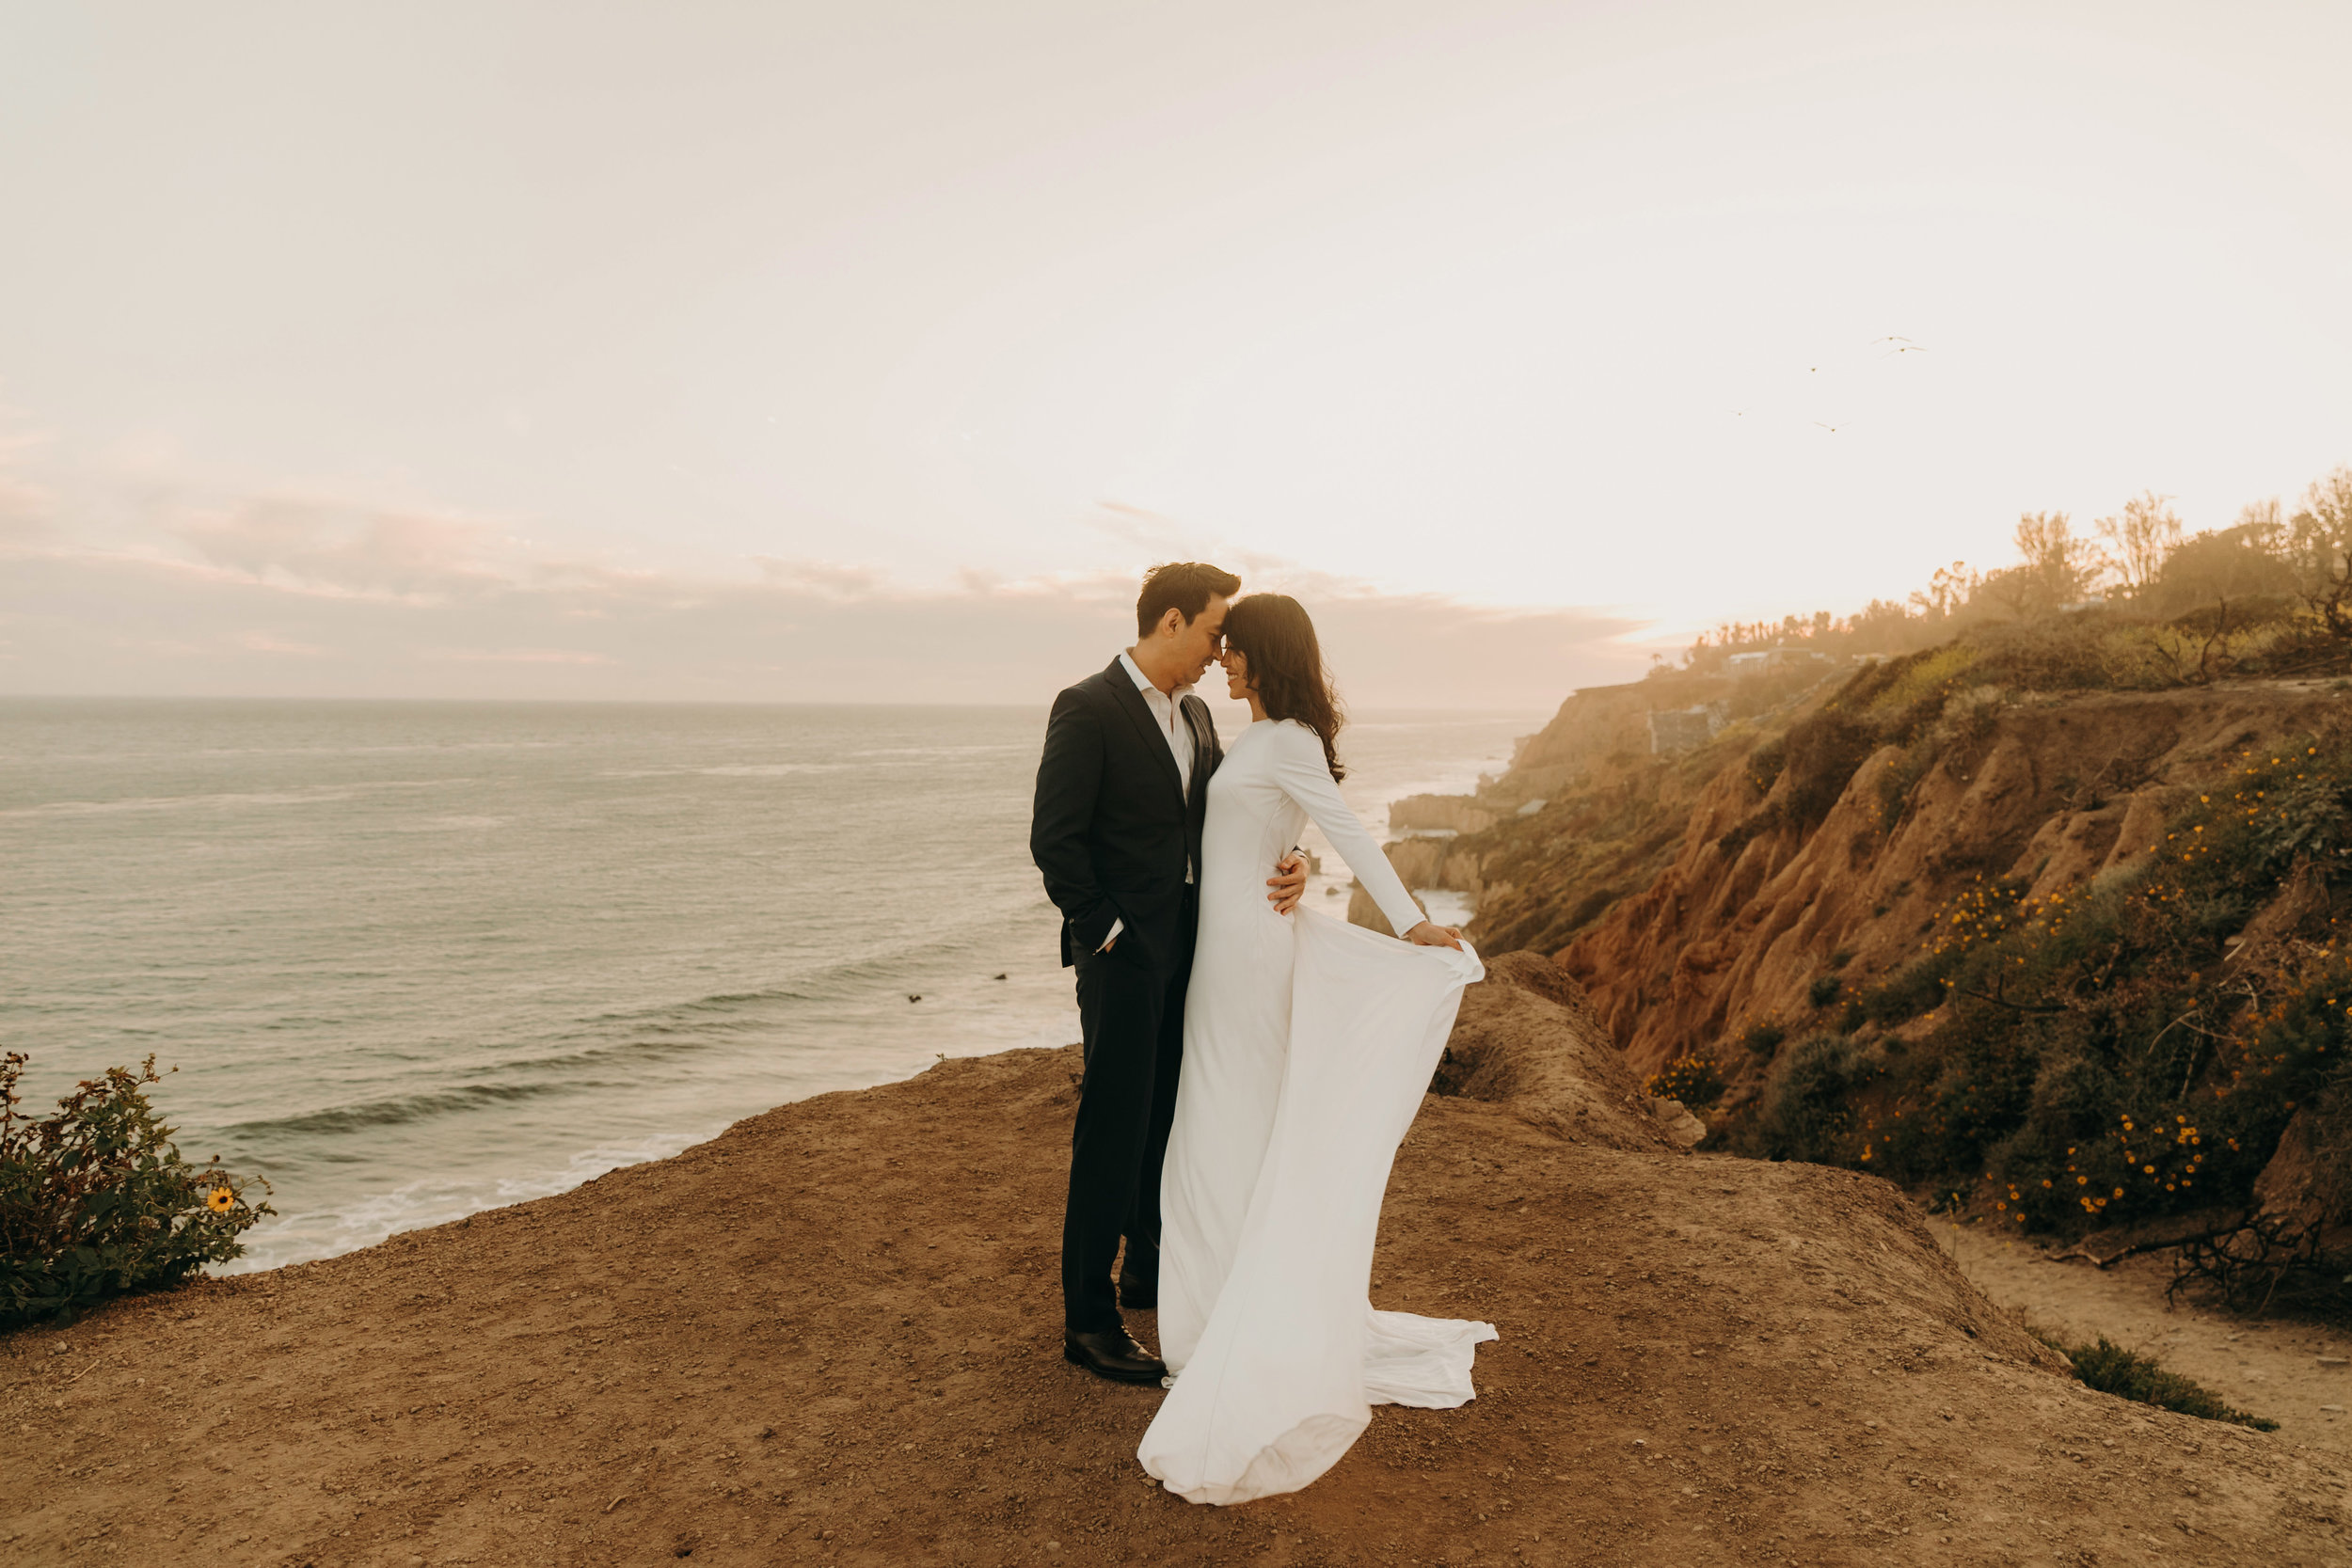 Cliffside Bridal shoot in Malibu, California   Bridals